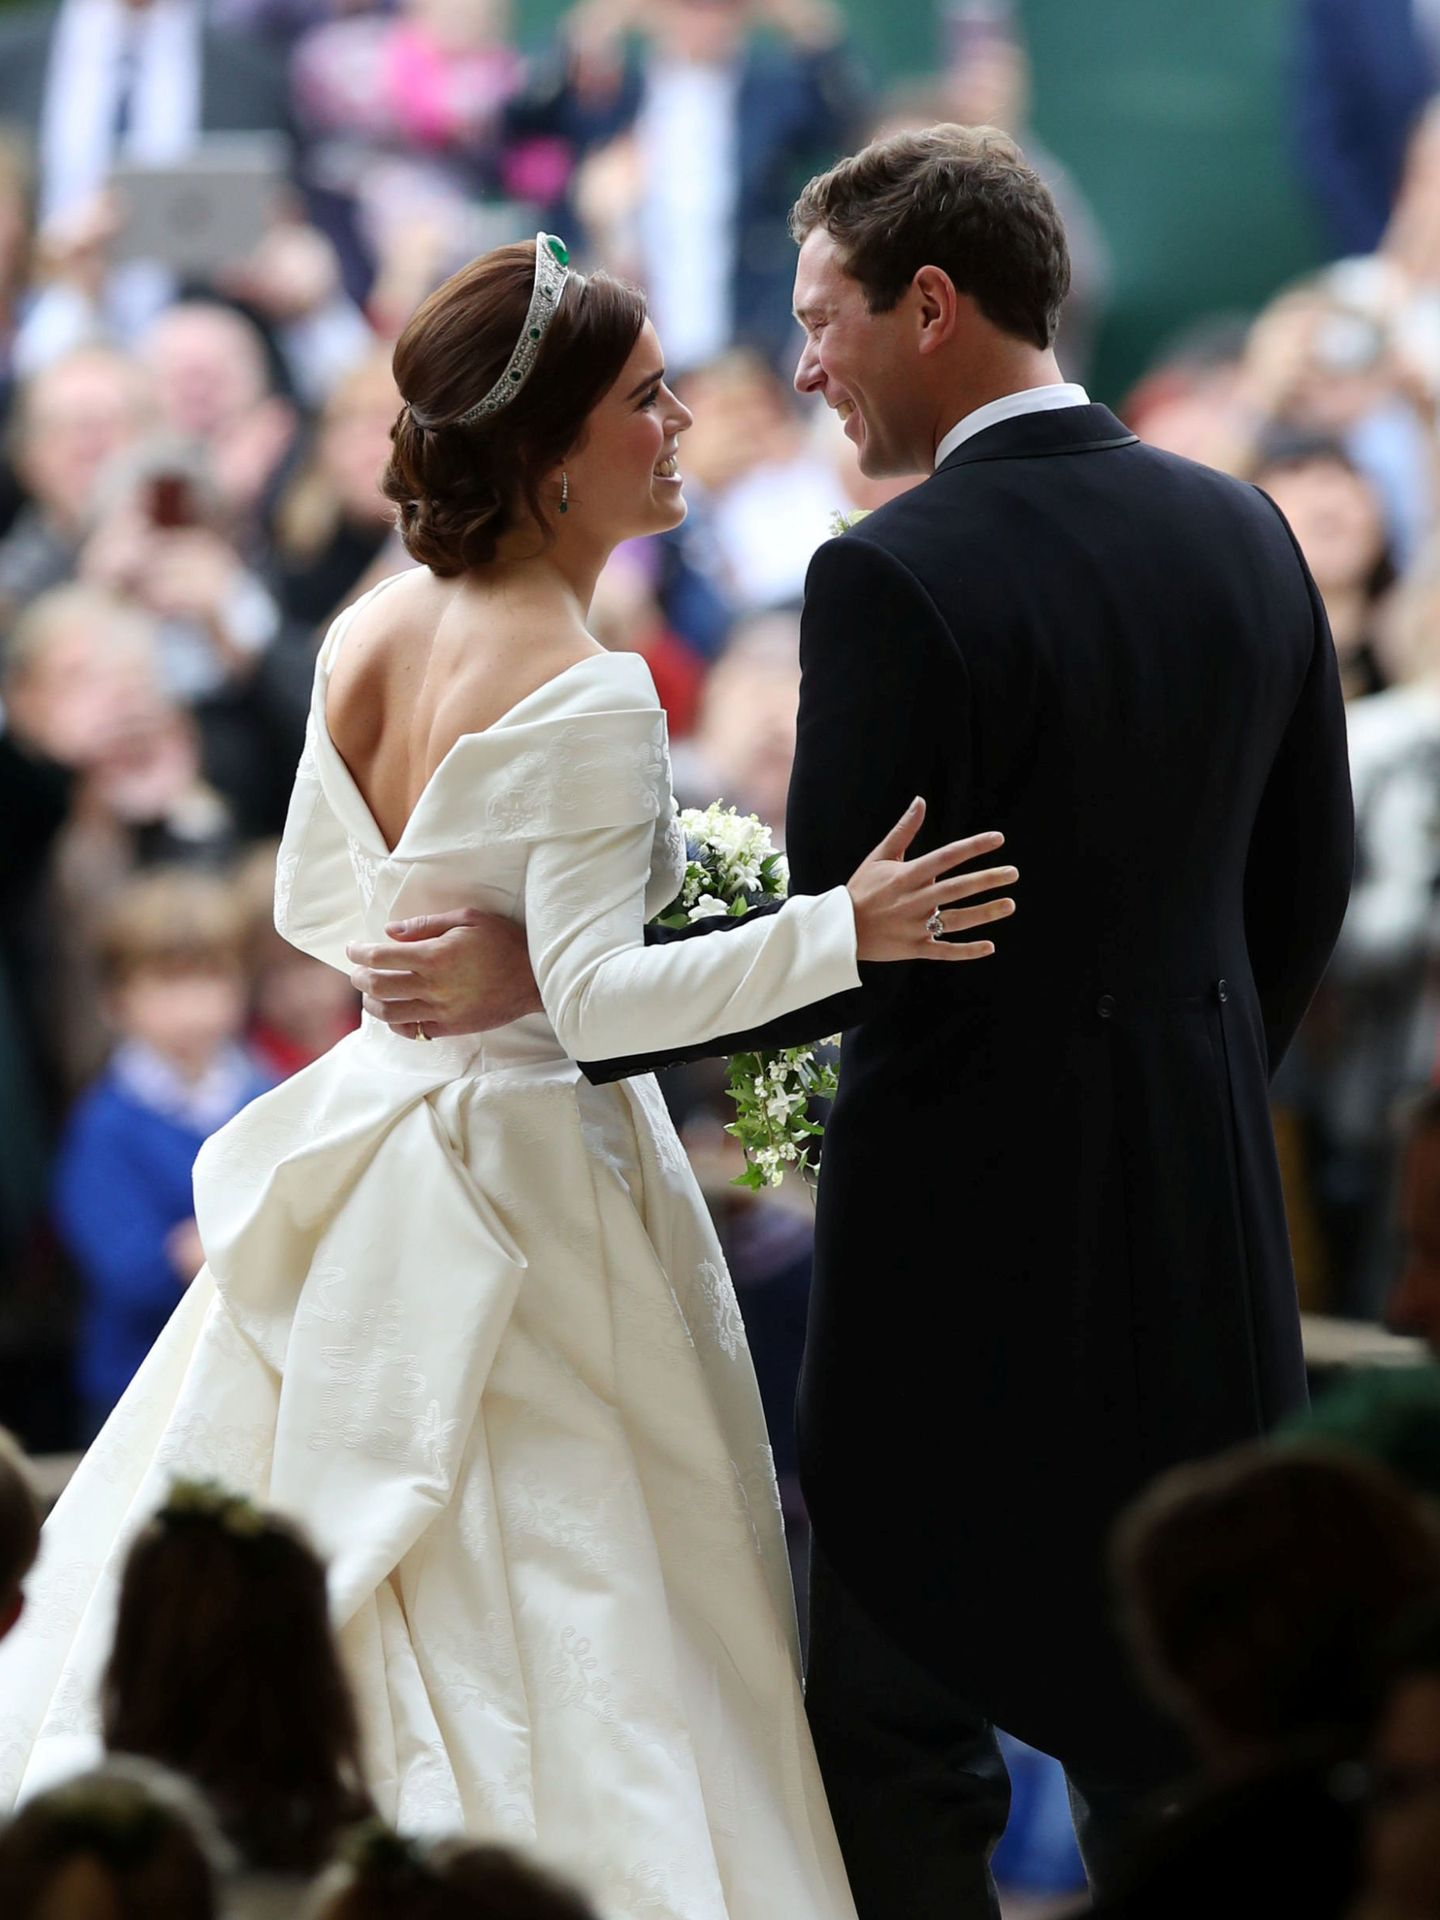 Princess Eugenie and her new husband Jack Brooksbank kiss as they leave St George's Chapel in Windsor Castle following their wedding, Windsor, Britain, October 12, 2018. Yui Mok Pool via REUTERS